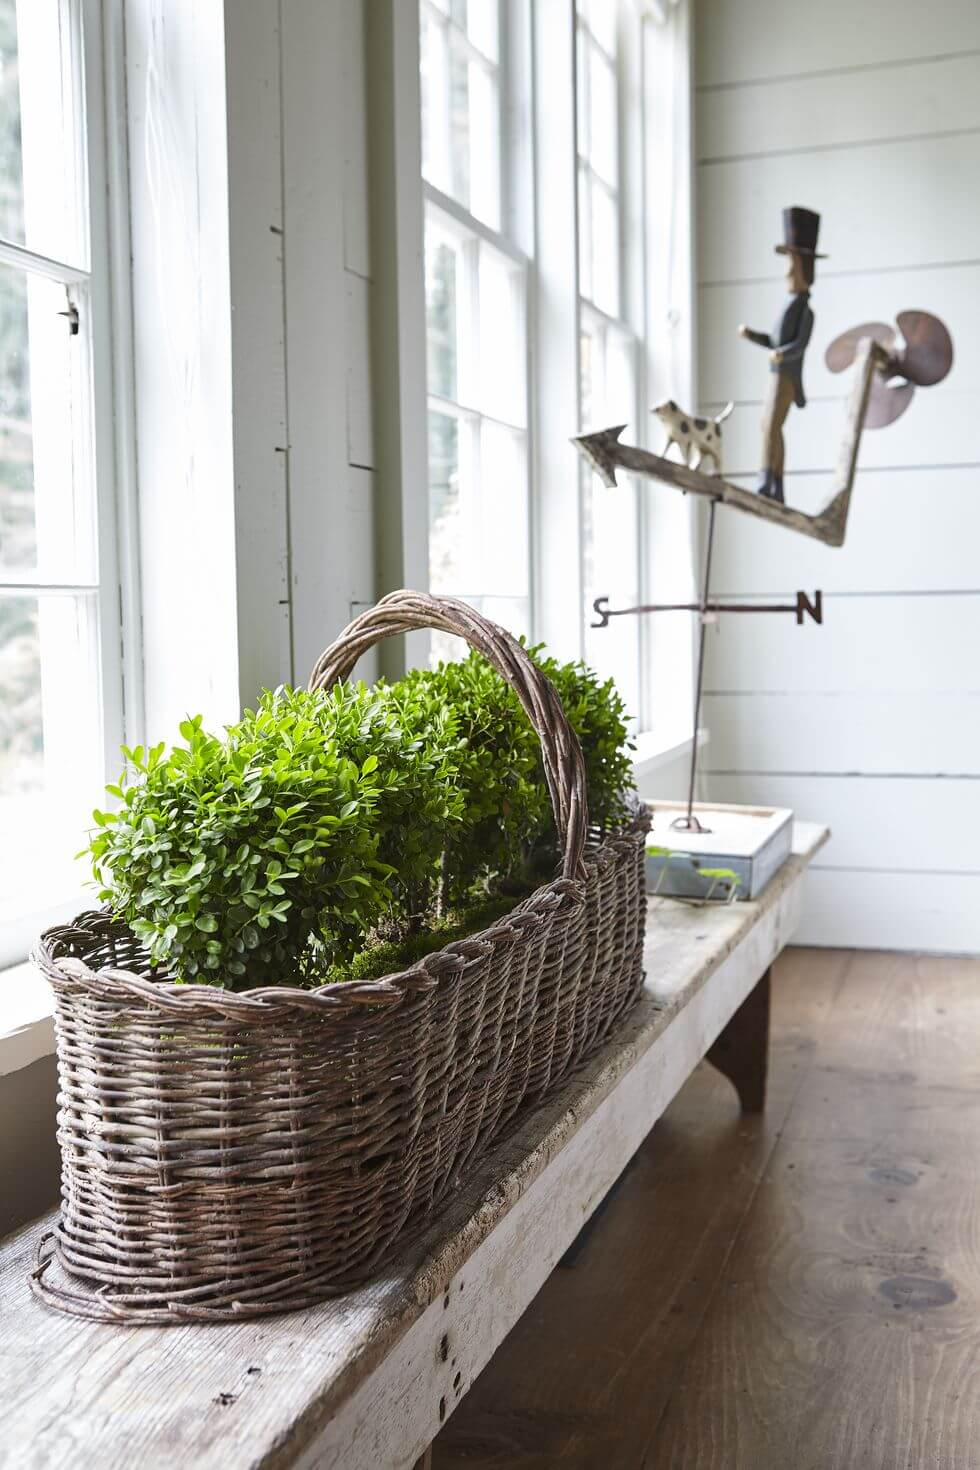 Oversized Basket of Greens on a Bench